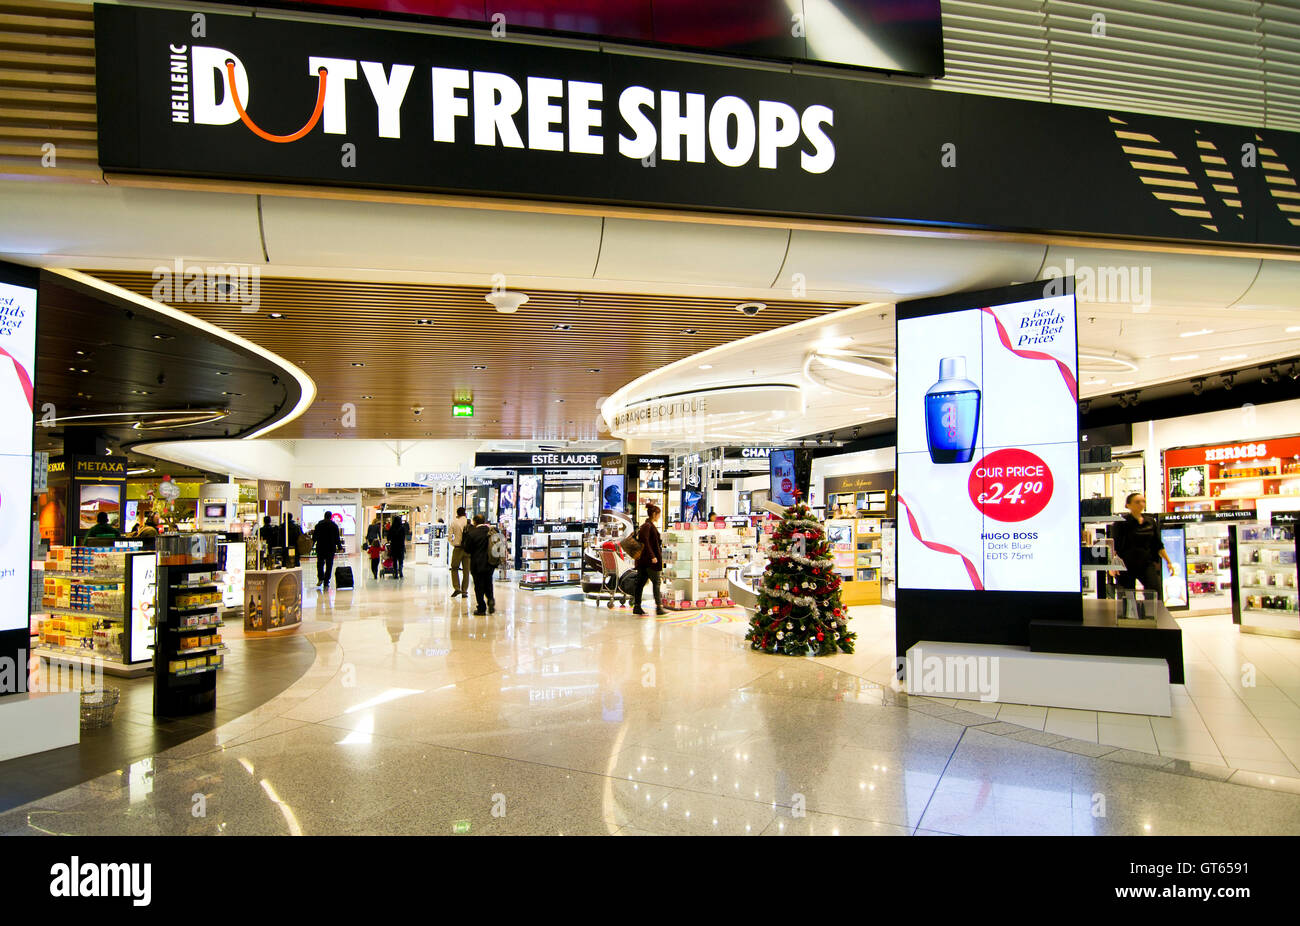 duty free shops at Eleftherios Venizelos airport in Athens Greece - Stock Image